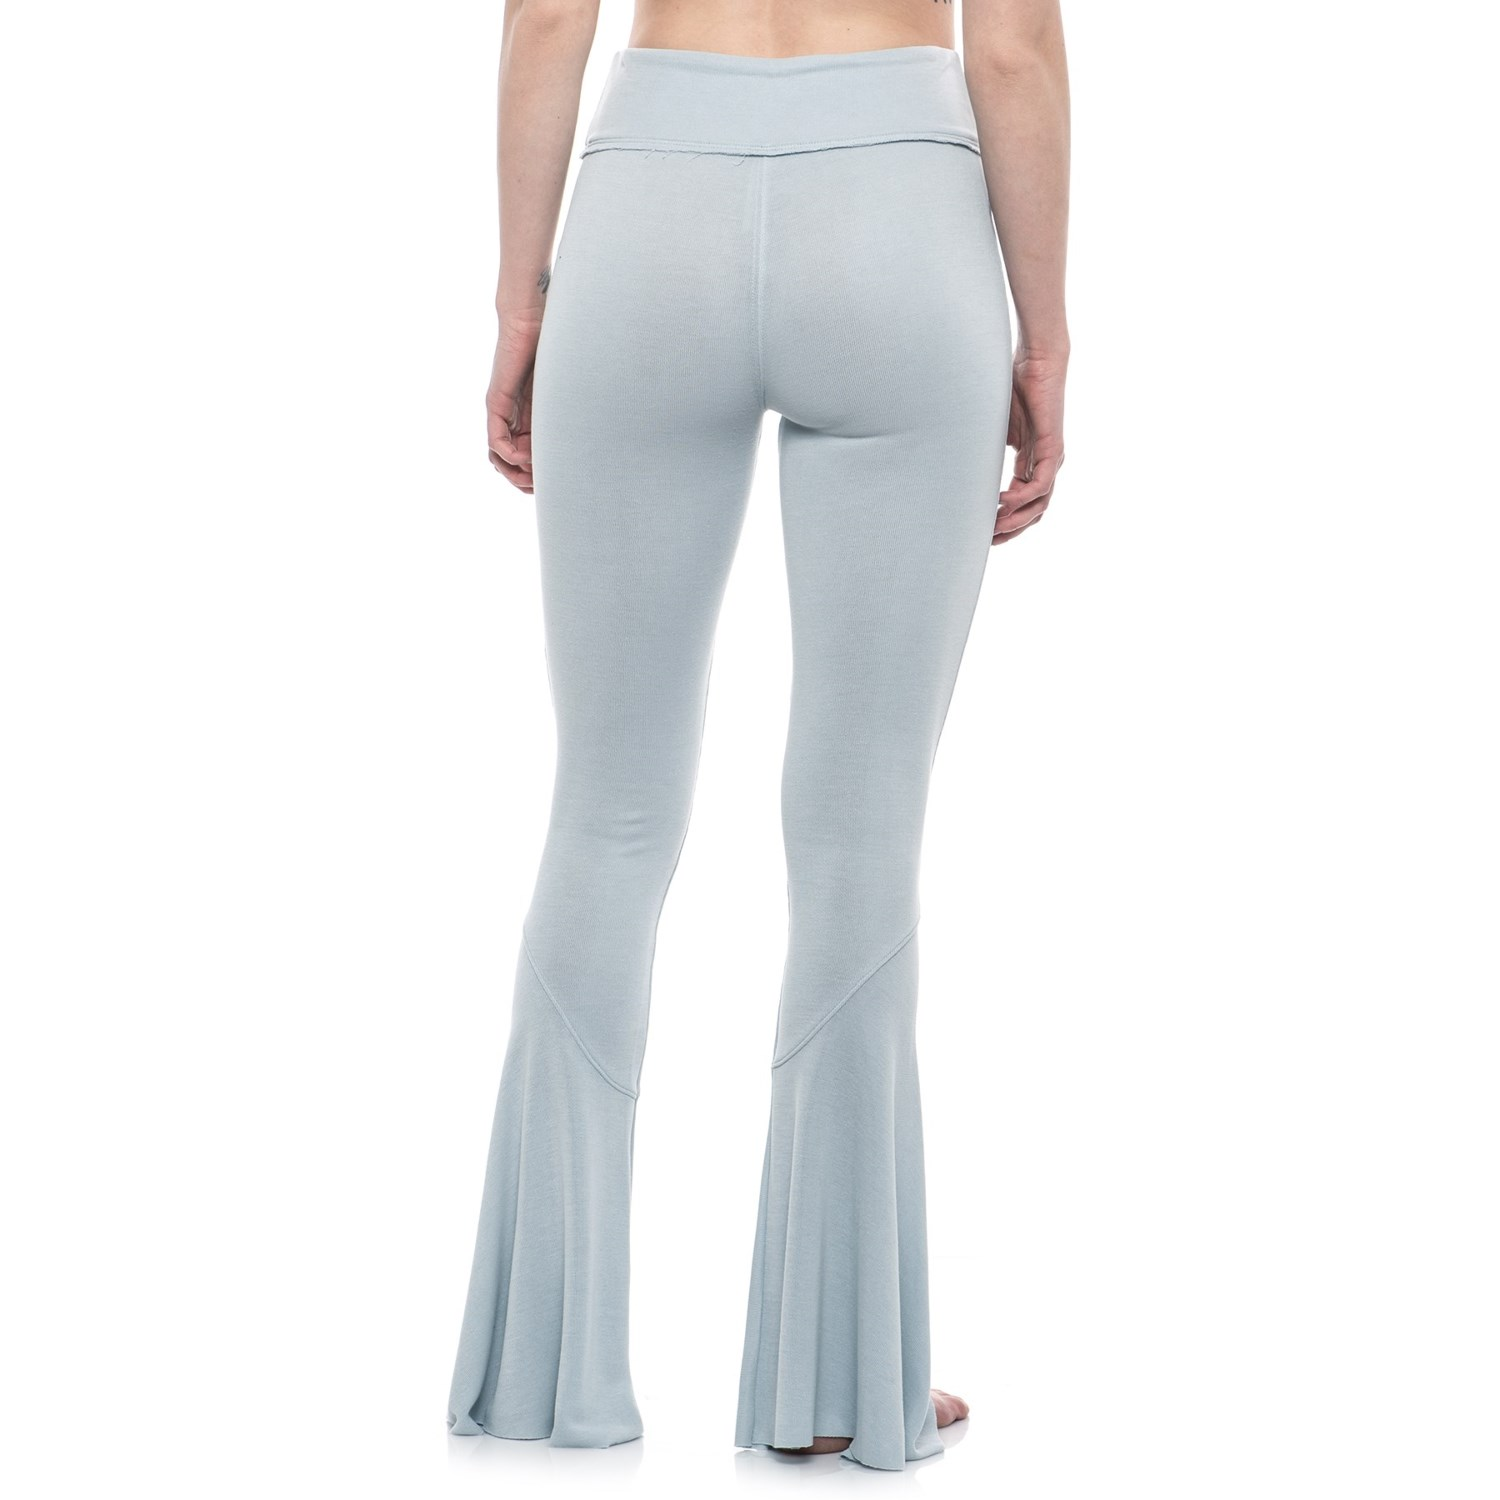 collection moving racer fully comforter endurance every control bra loaded pants comfort pin sports